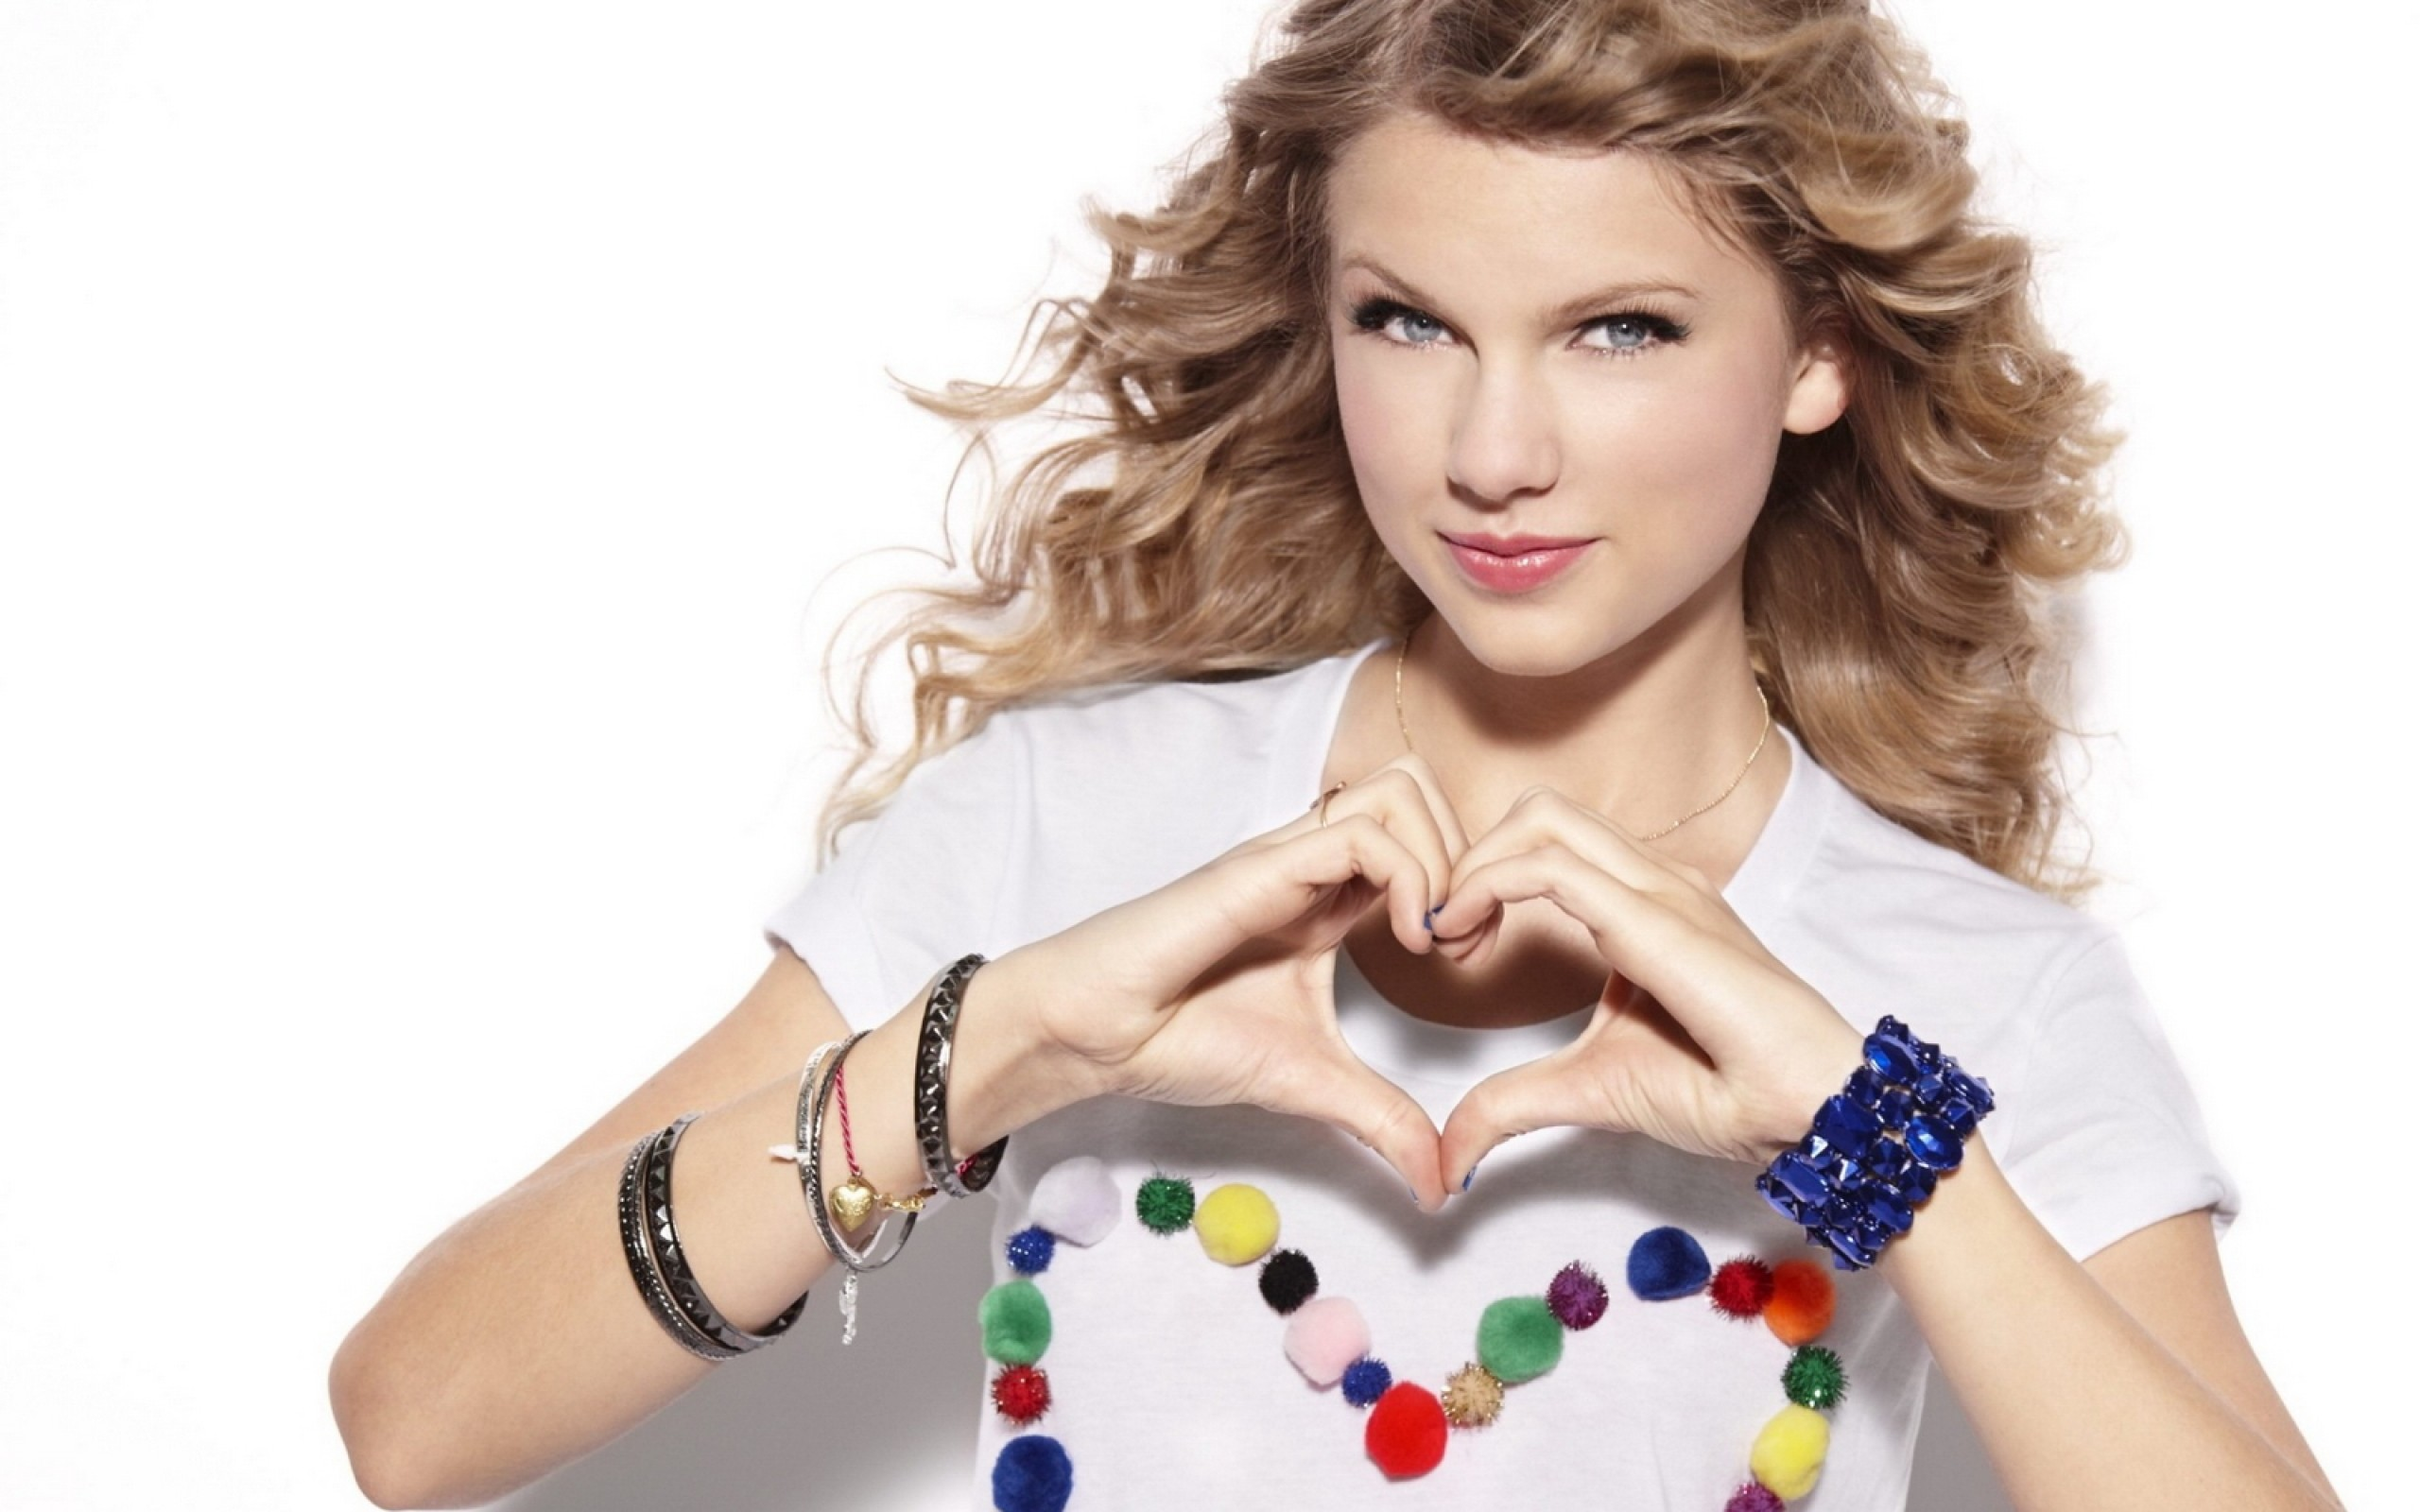 Taylor Swift Beautiful HD Wallpaper 2560x1600